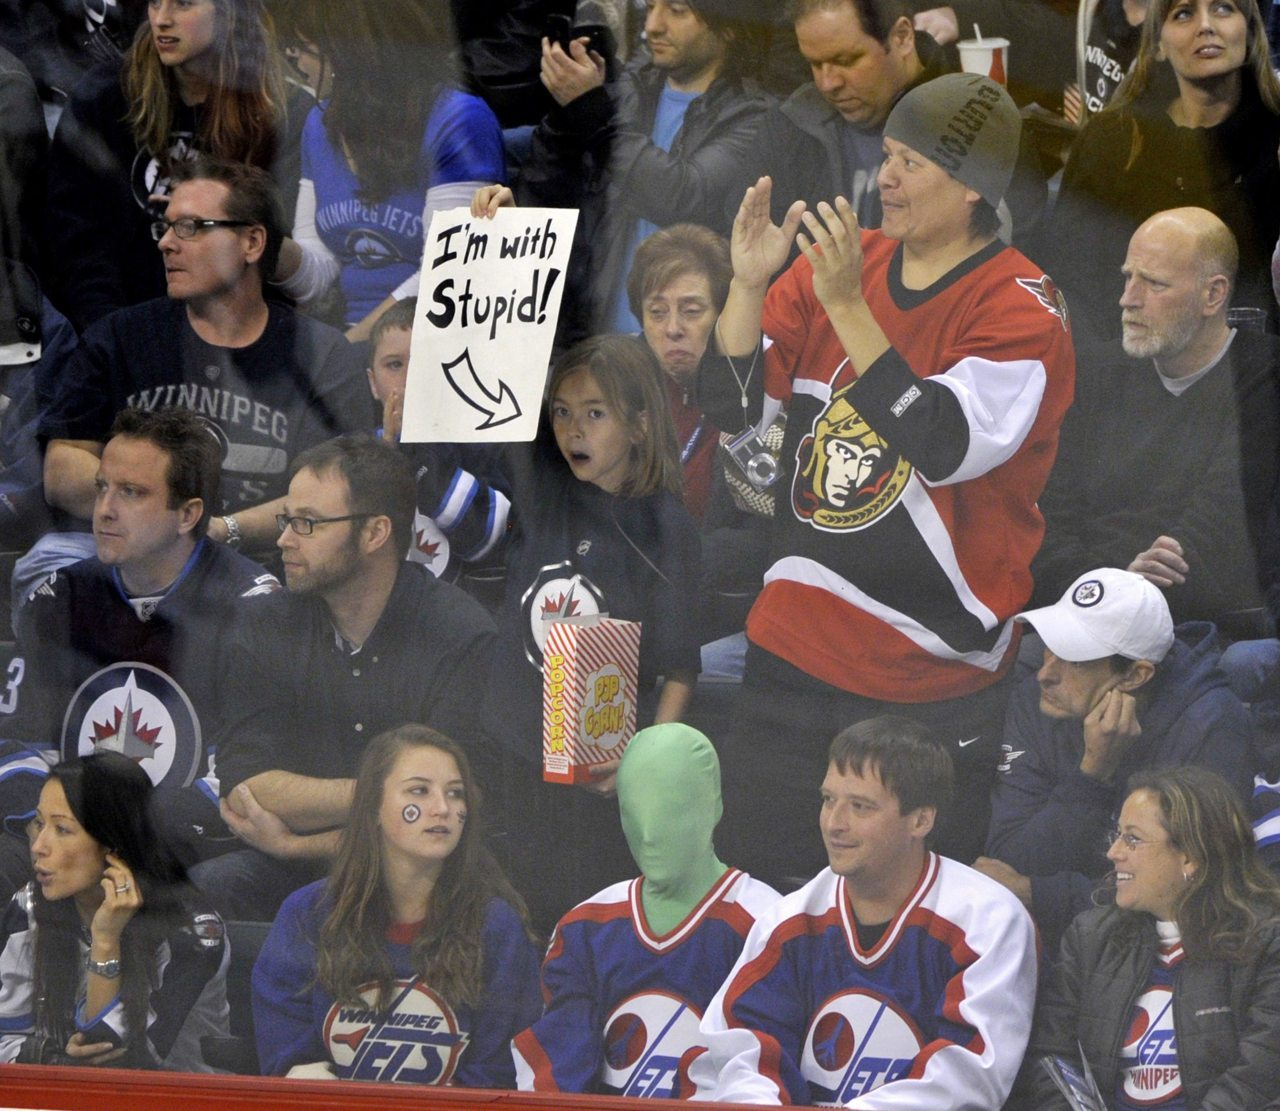 nationalpostsports:  Kicking off a road tripThis Senators fan may have been mocked by a small child, but Ottawa got the last laugh with a wild 6-4 win over the Jets in Winnipeg on Tuesday. Photo: Fred Greenslade/Reuters